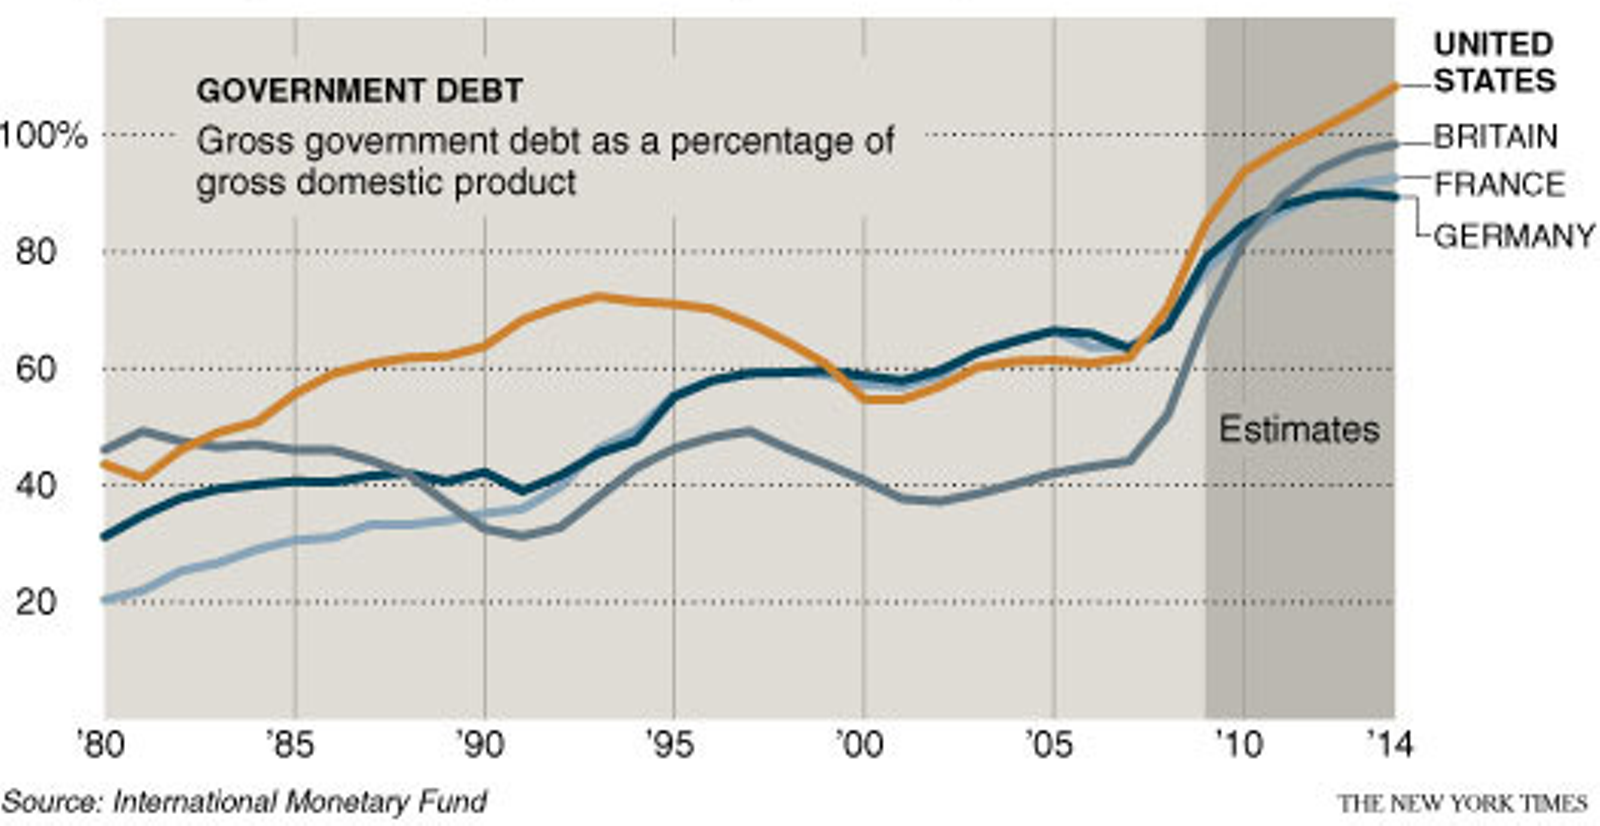 http://einarbb.blog.is/users/72/einarbb/img/government_debt.png